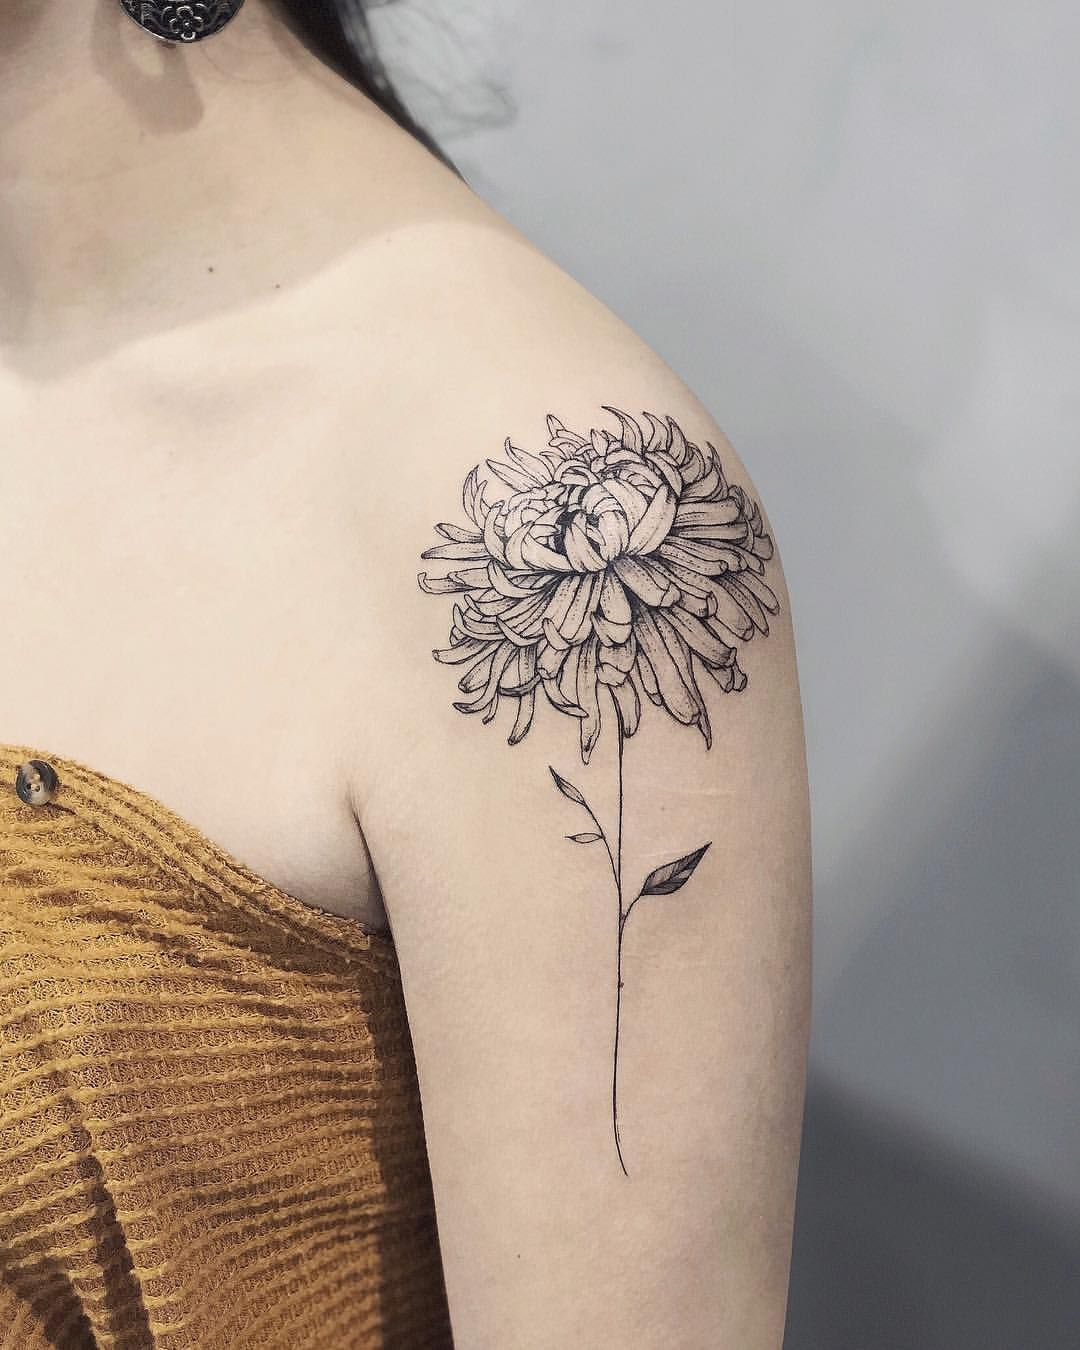 Chrysanthemum For Abi Done At Philly Tattoo Convention Villainarts Chrysanthemumtattoo Inkedmag In 2020 Chrysanthemum Tattoo Birth Flower Tattoos Tattoos